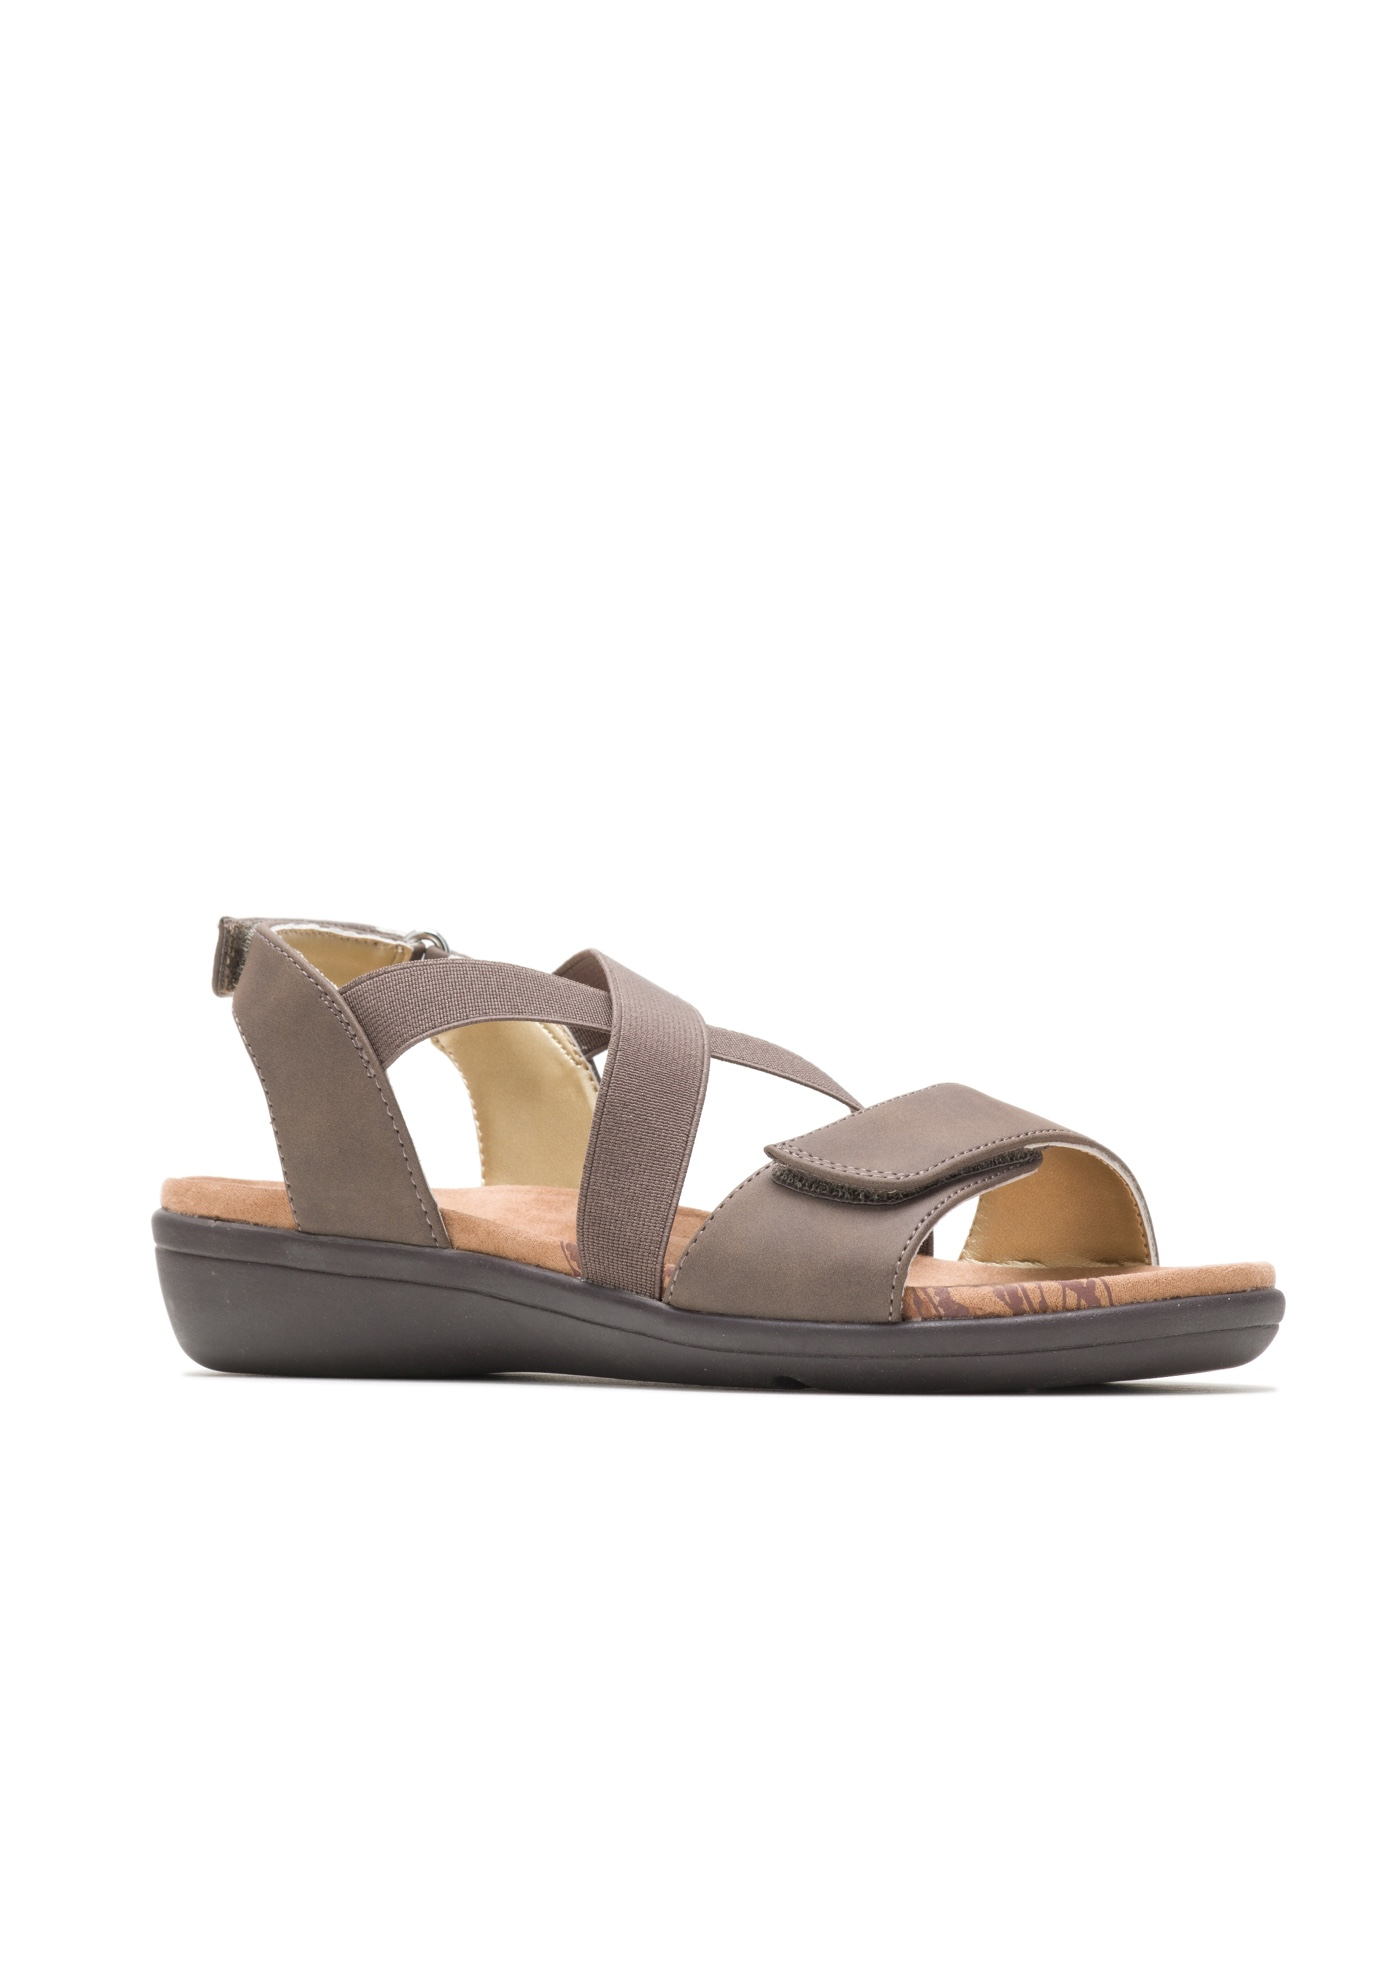 Soft Style Patience Sandals,